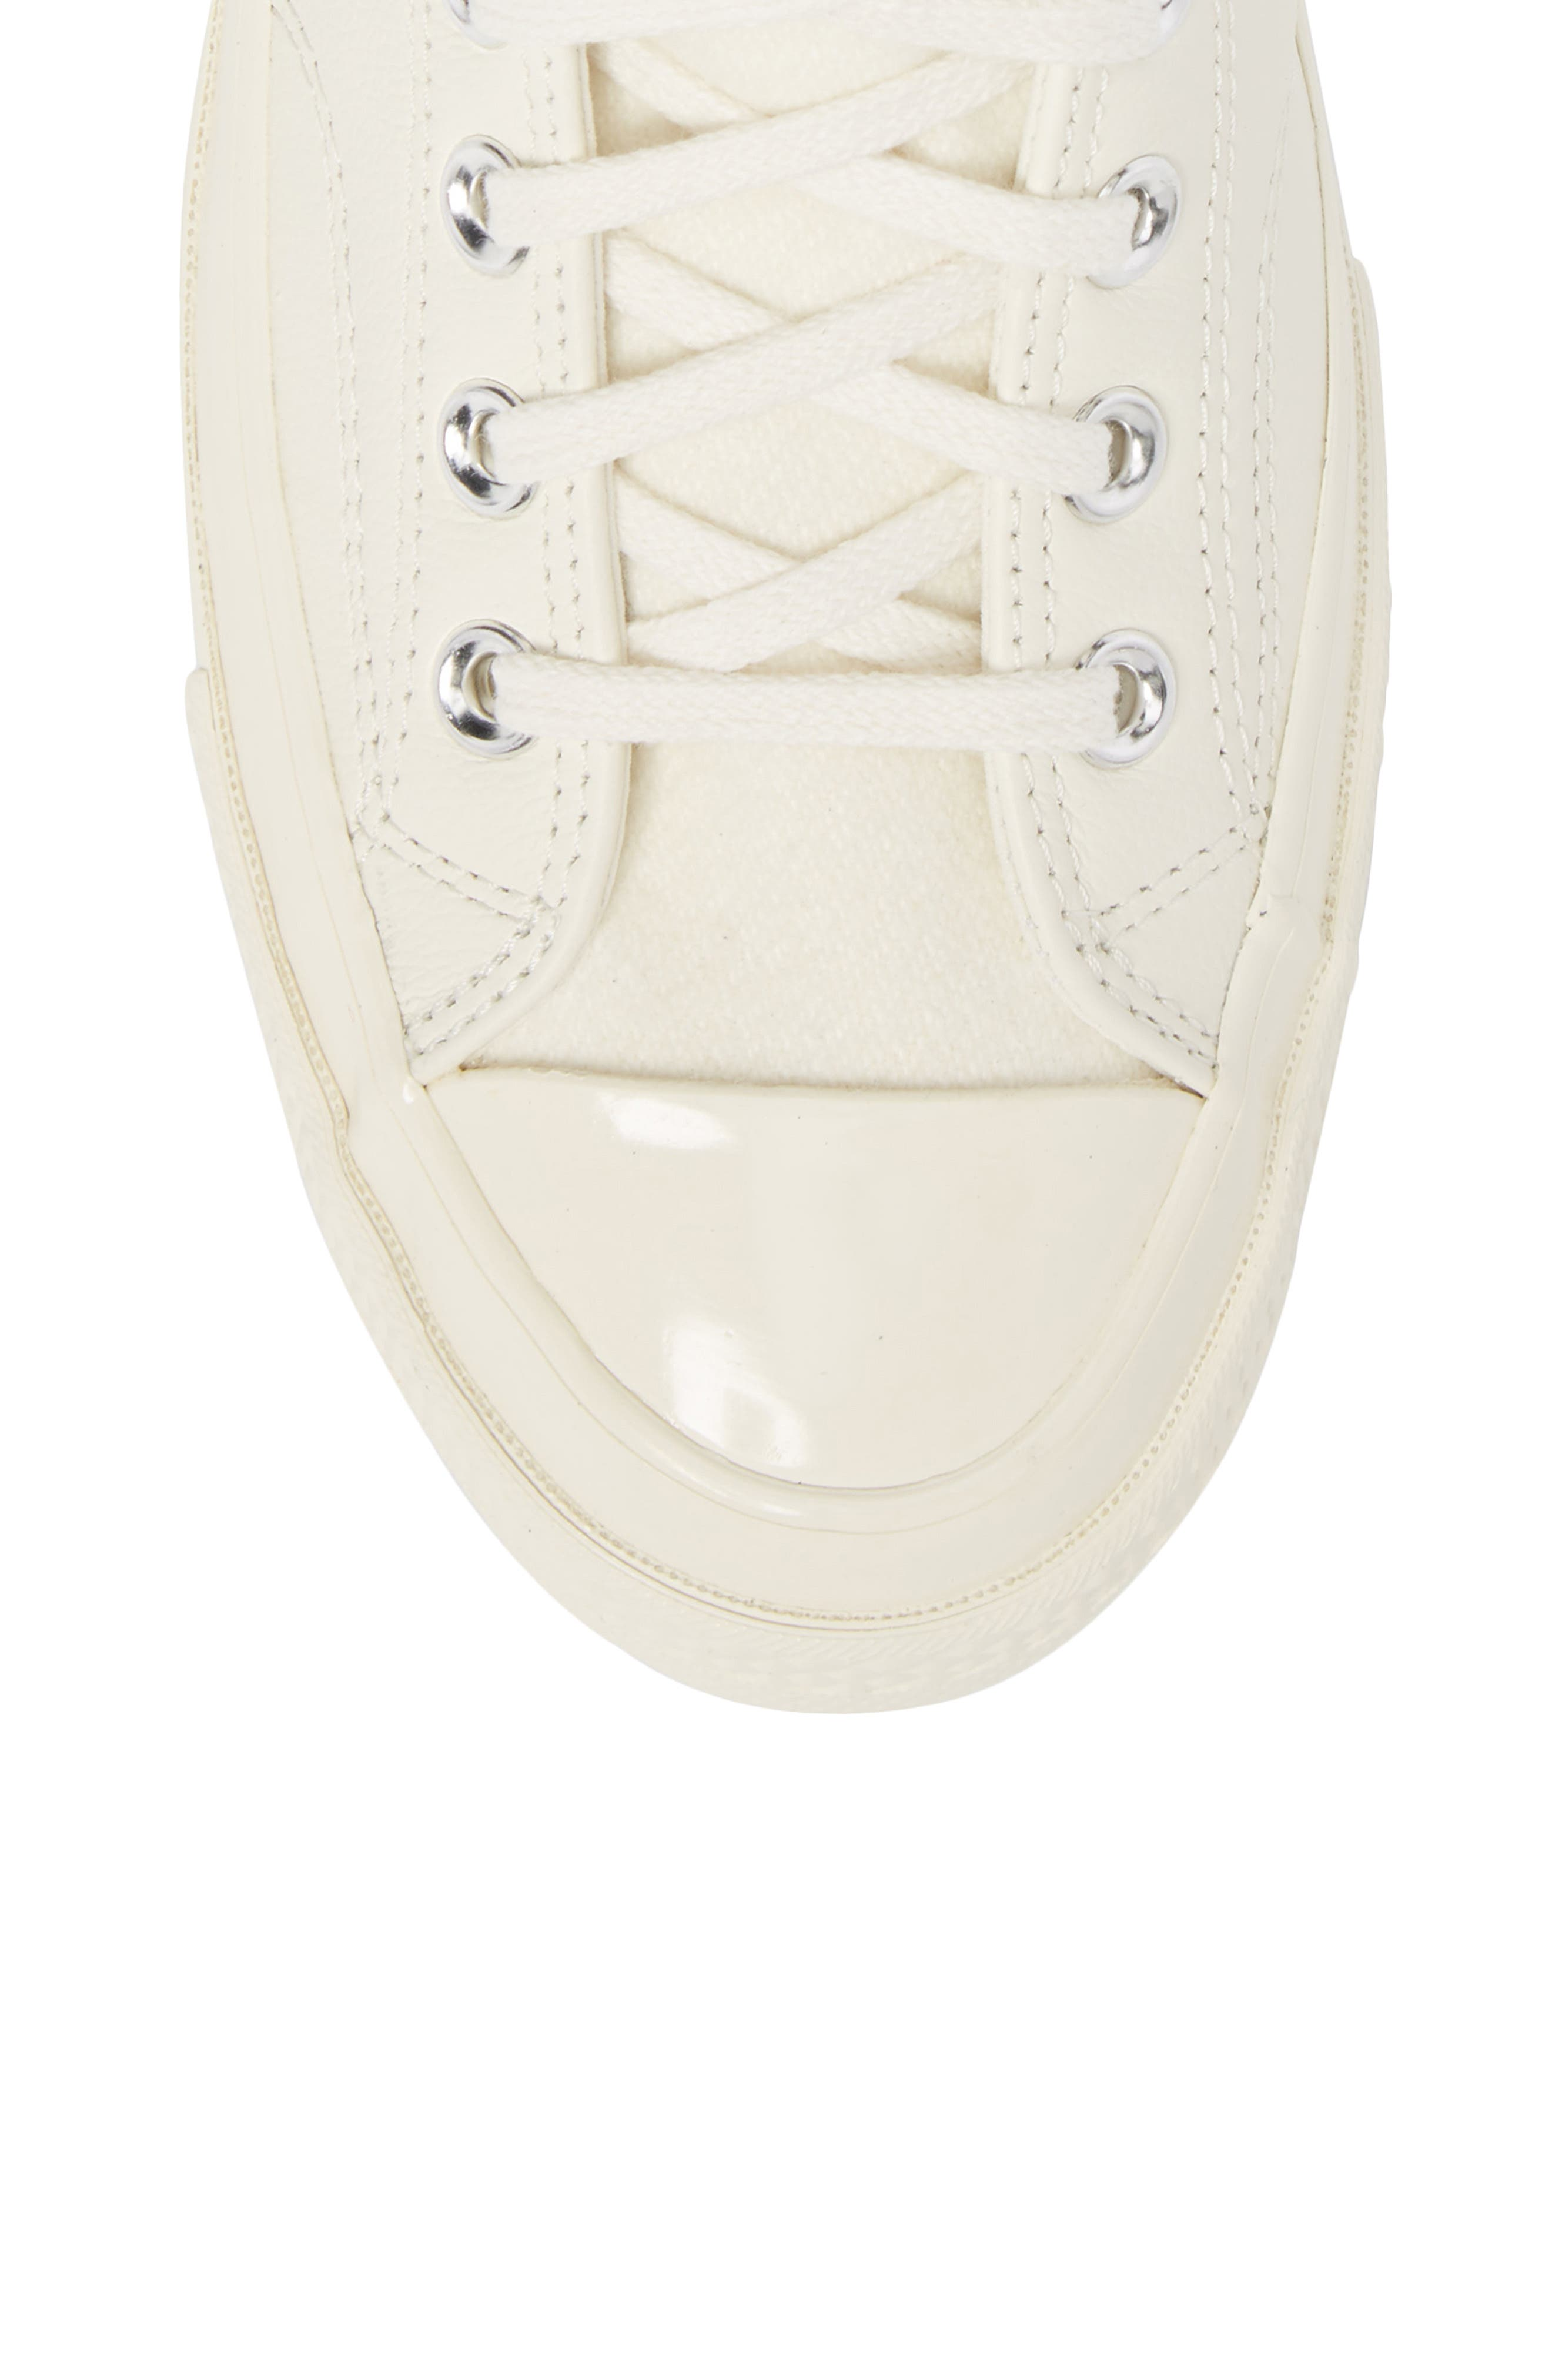 CONVERSE,                             Chuck Taylor<sup>®</sup> All Star<sup>®</sup> Wordmark High Top Sneaker,                             Alternate thumbnail 5, color,                             281